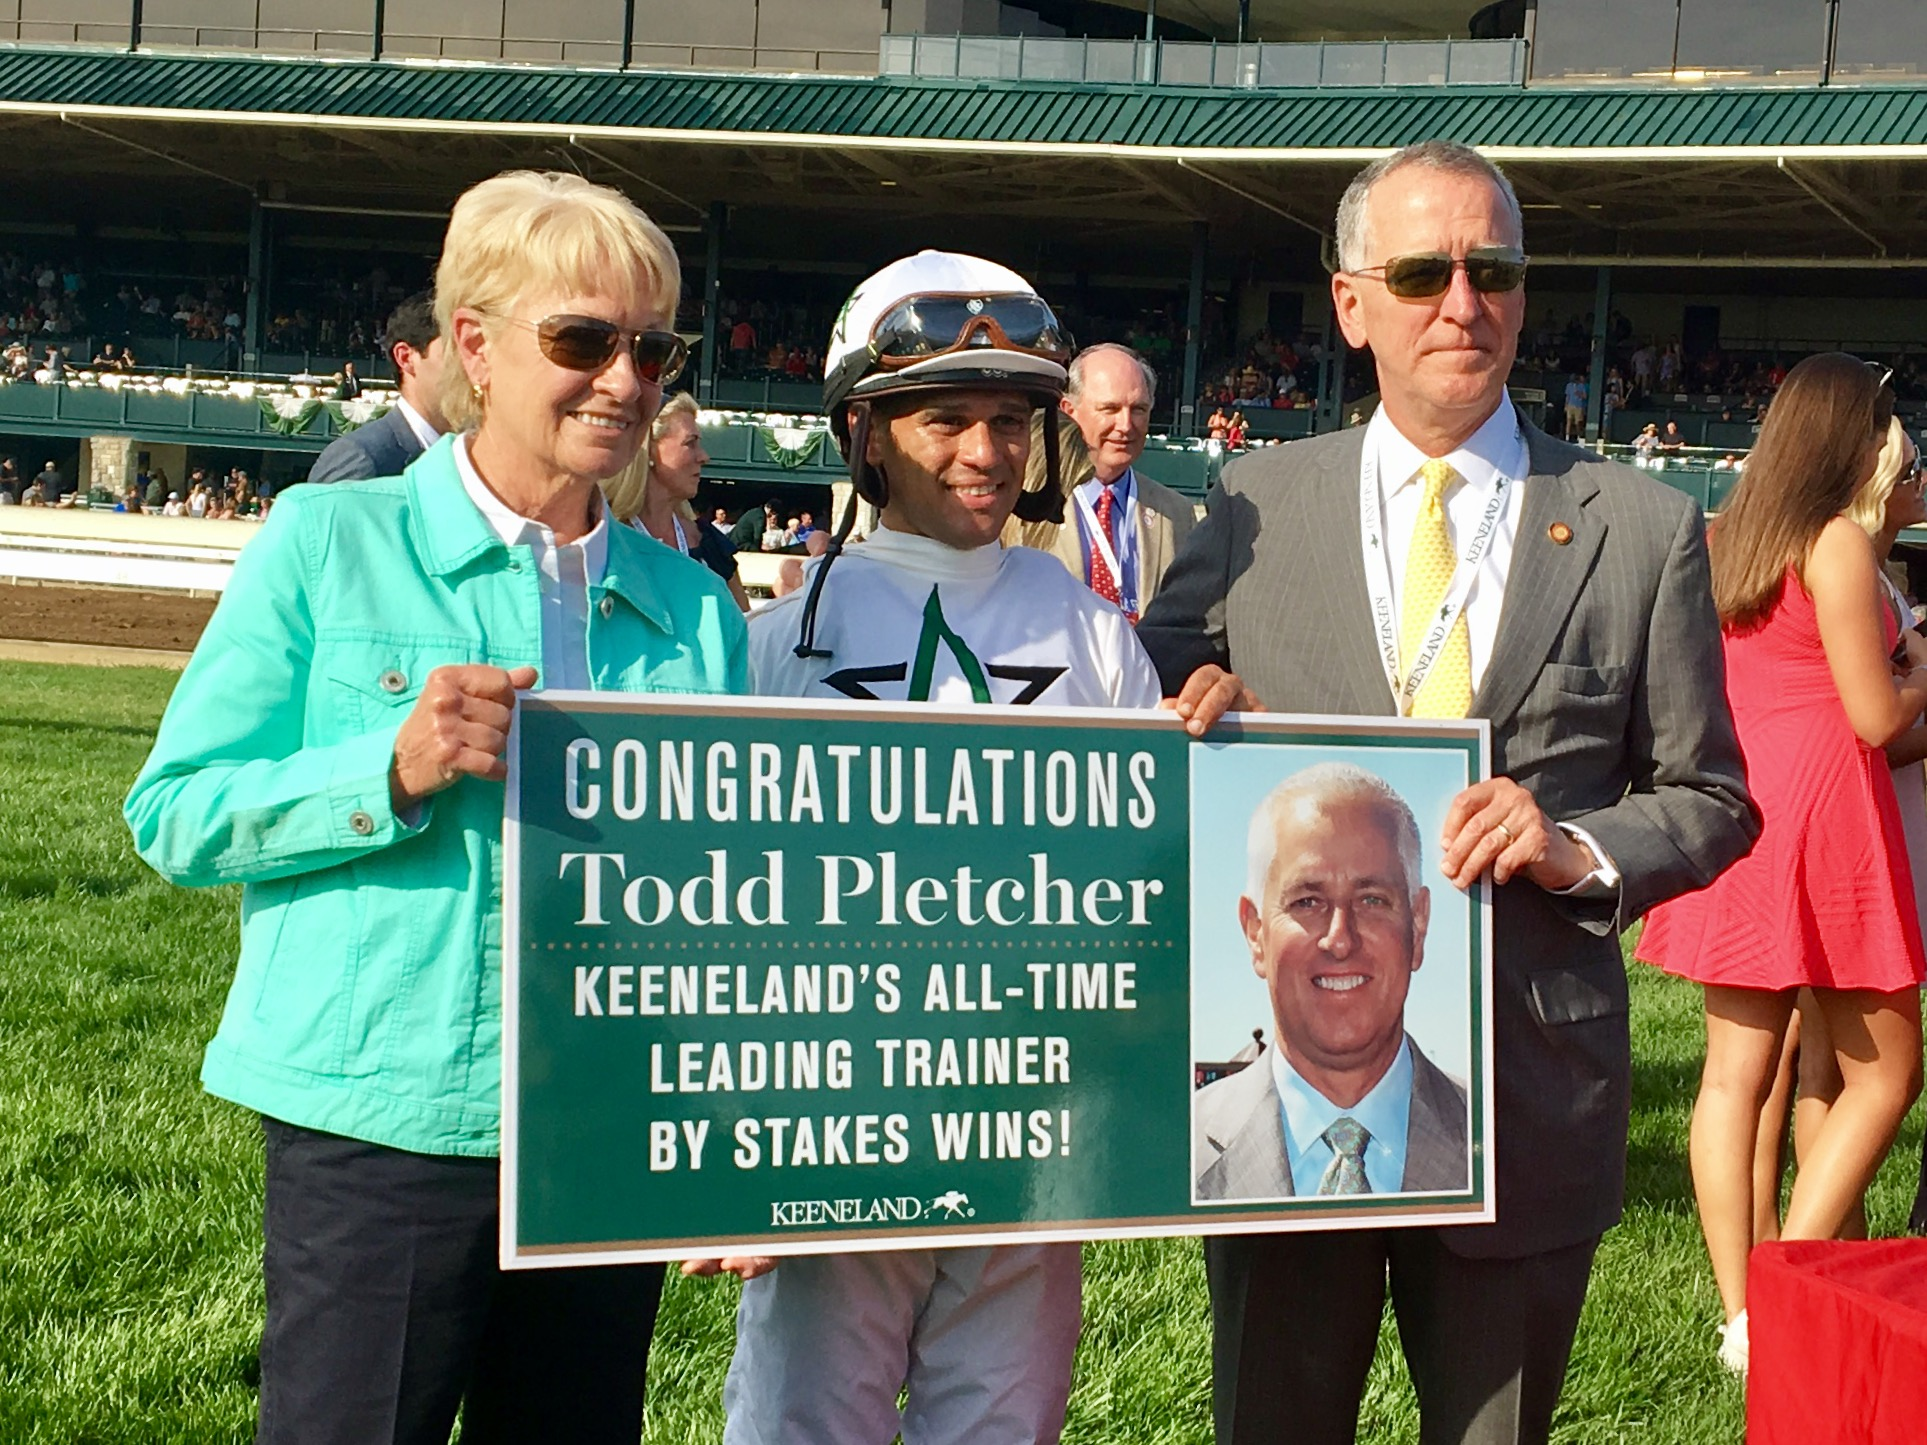 Ginny DePasquale with Javier Castellano and Todd Pletcher and the Keeneland placard. Photo: Keeneland/Coady Photography